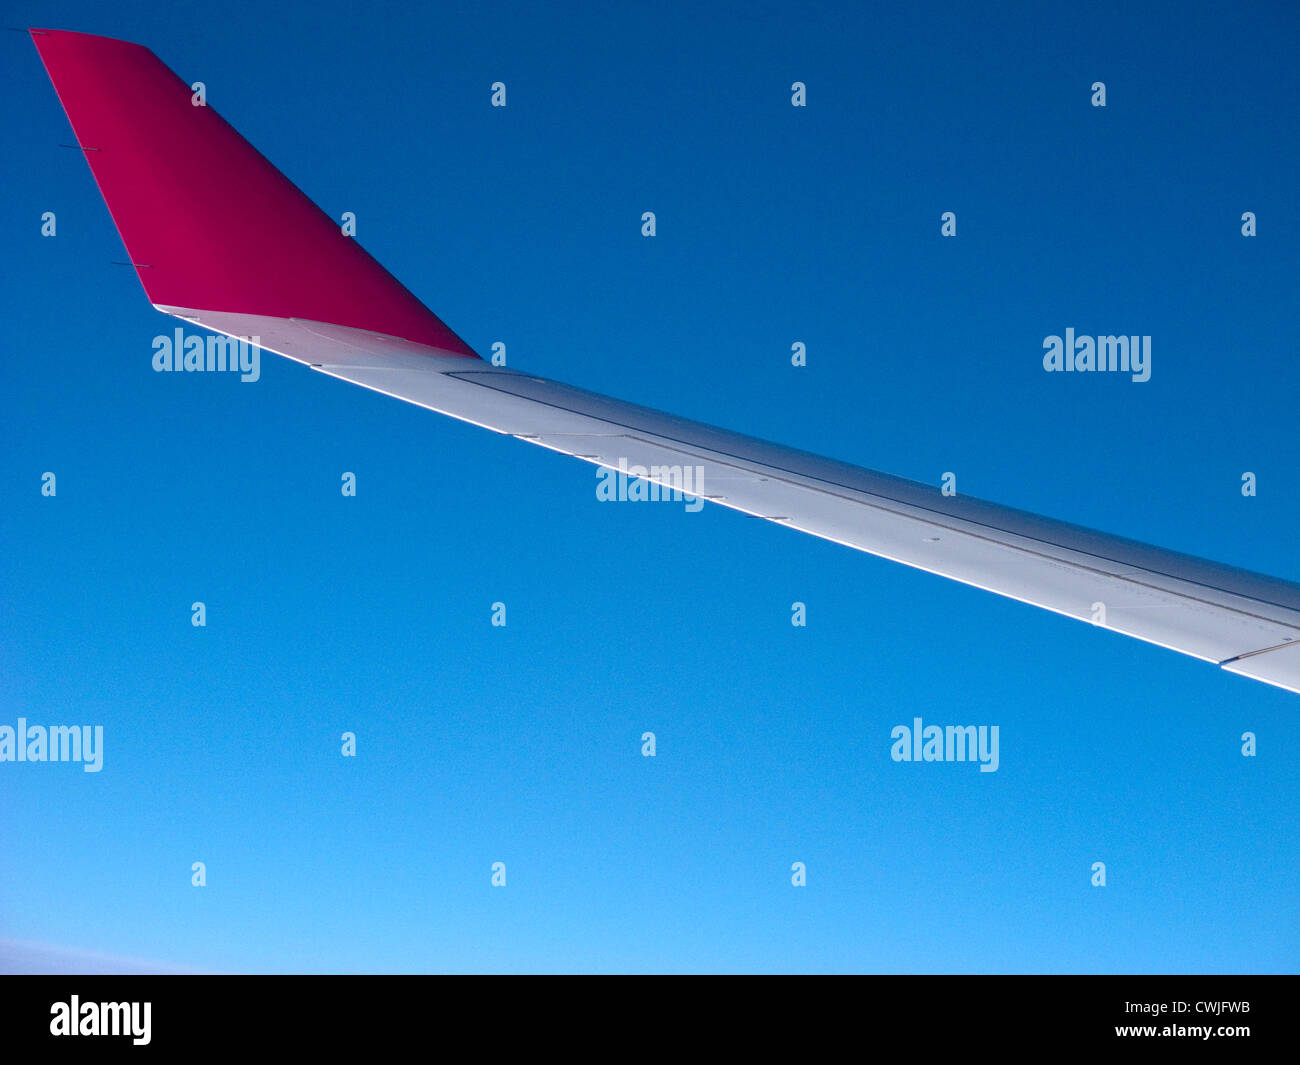 The wing tip of an Etihad Airways Airbus A340 - Stock Image